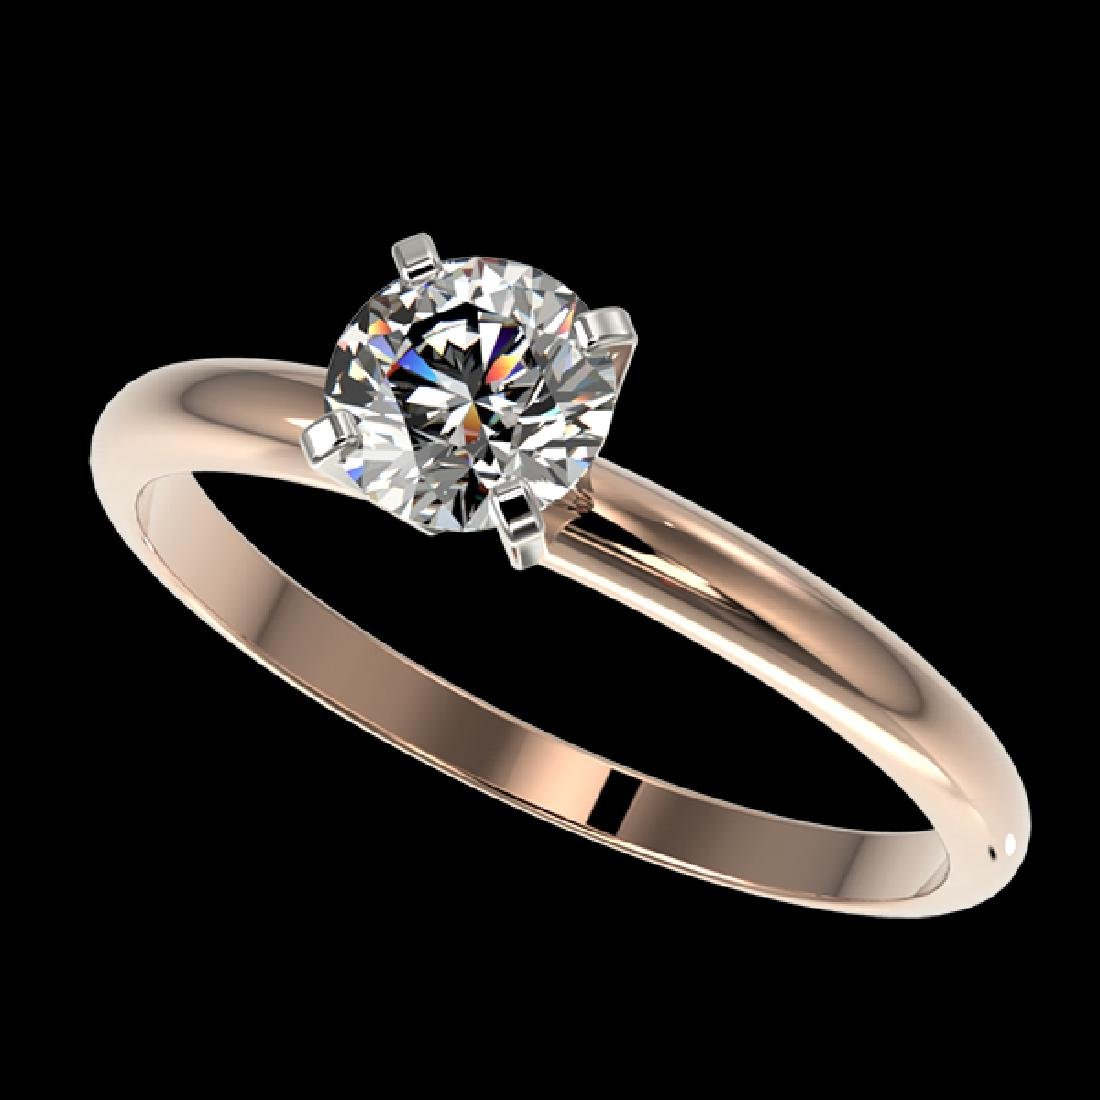 0.77 CTW Certified G-Si Quality Diamond Solitaire